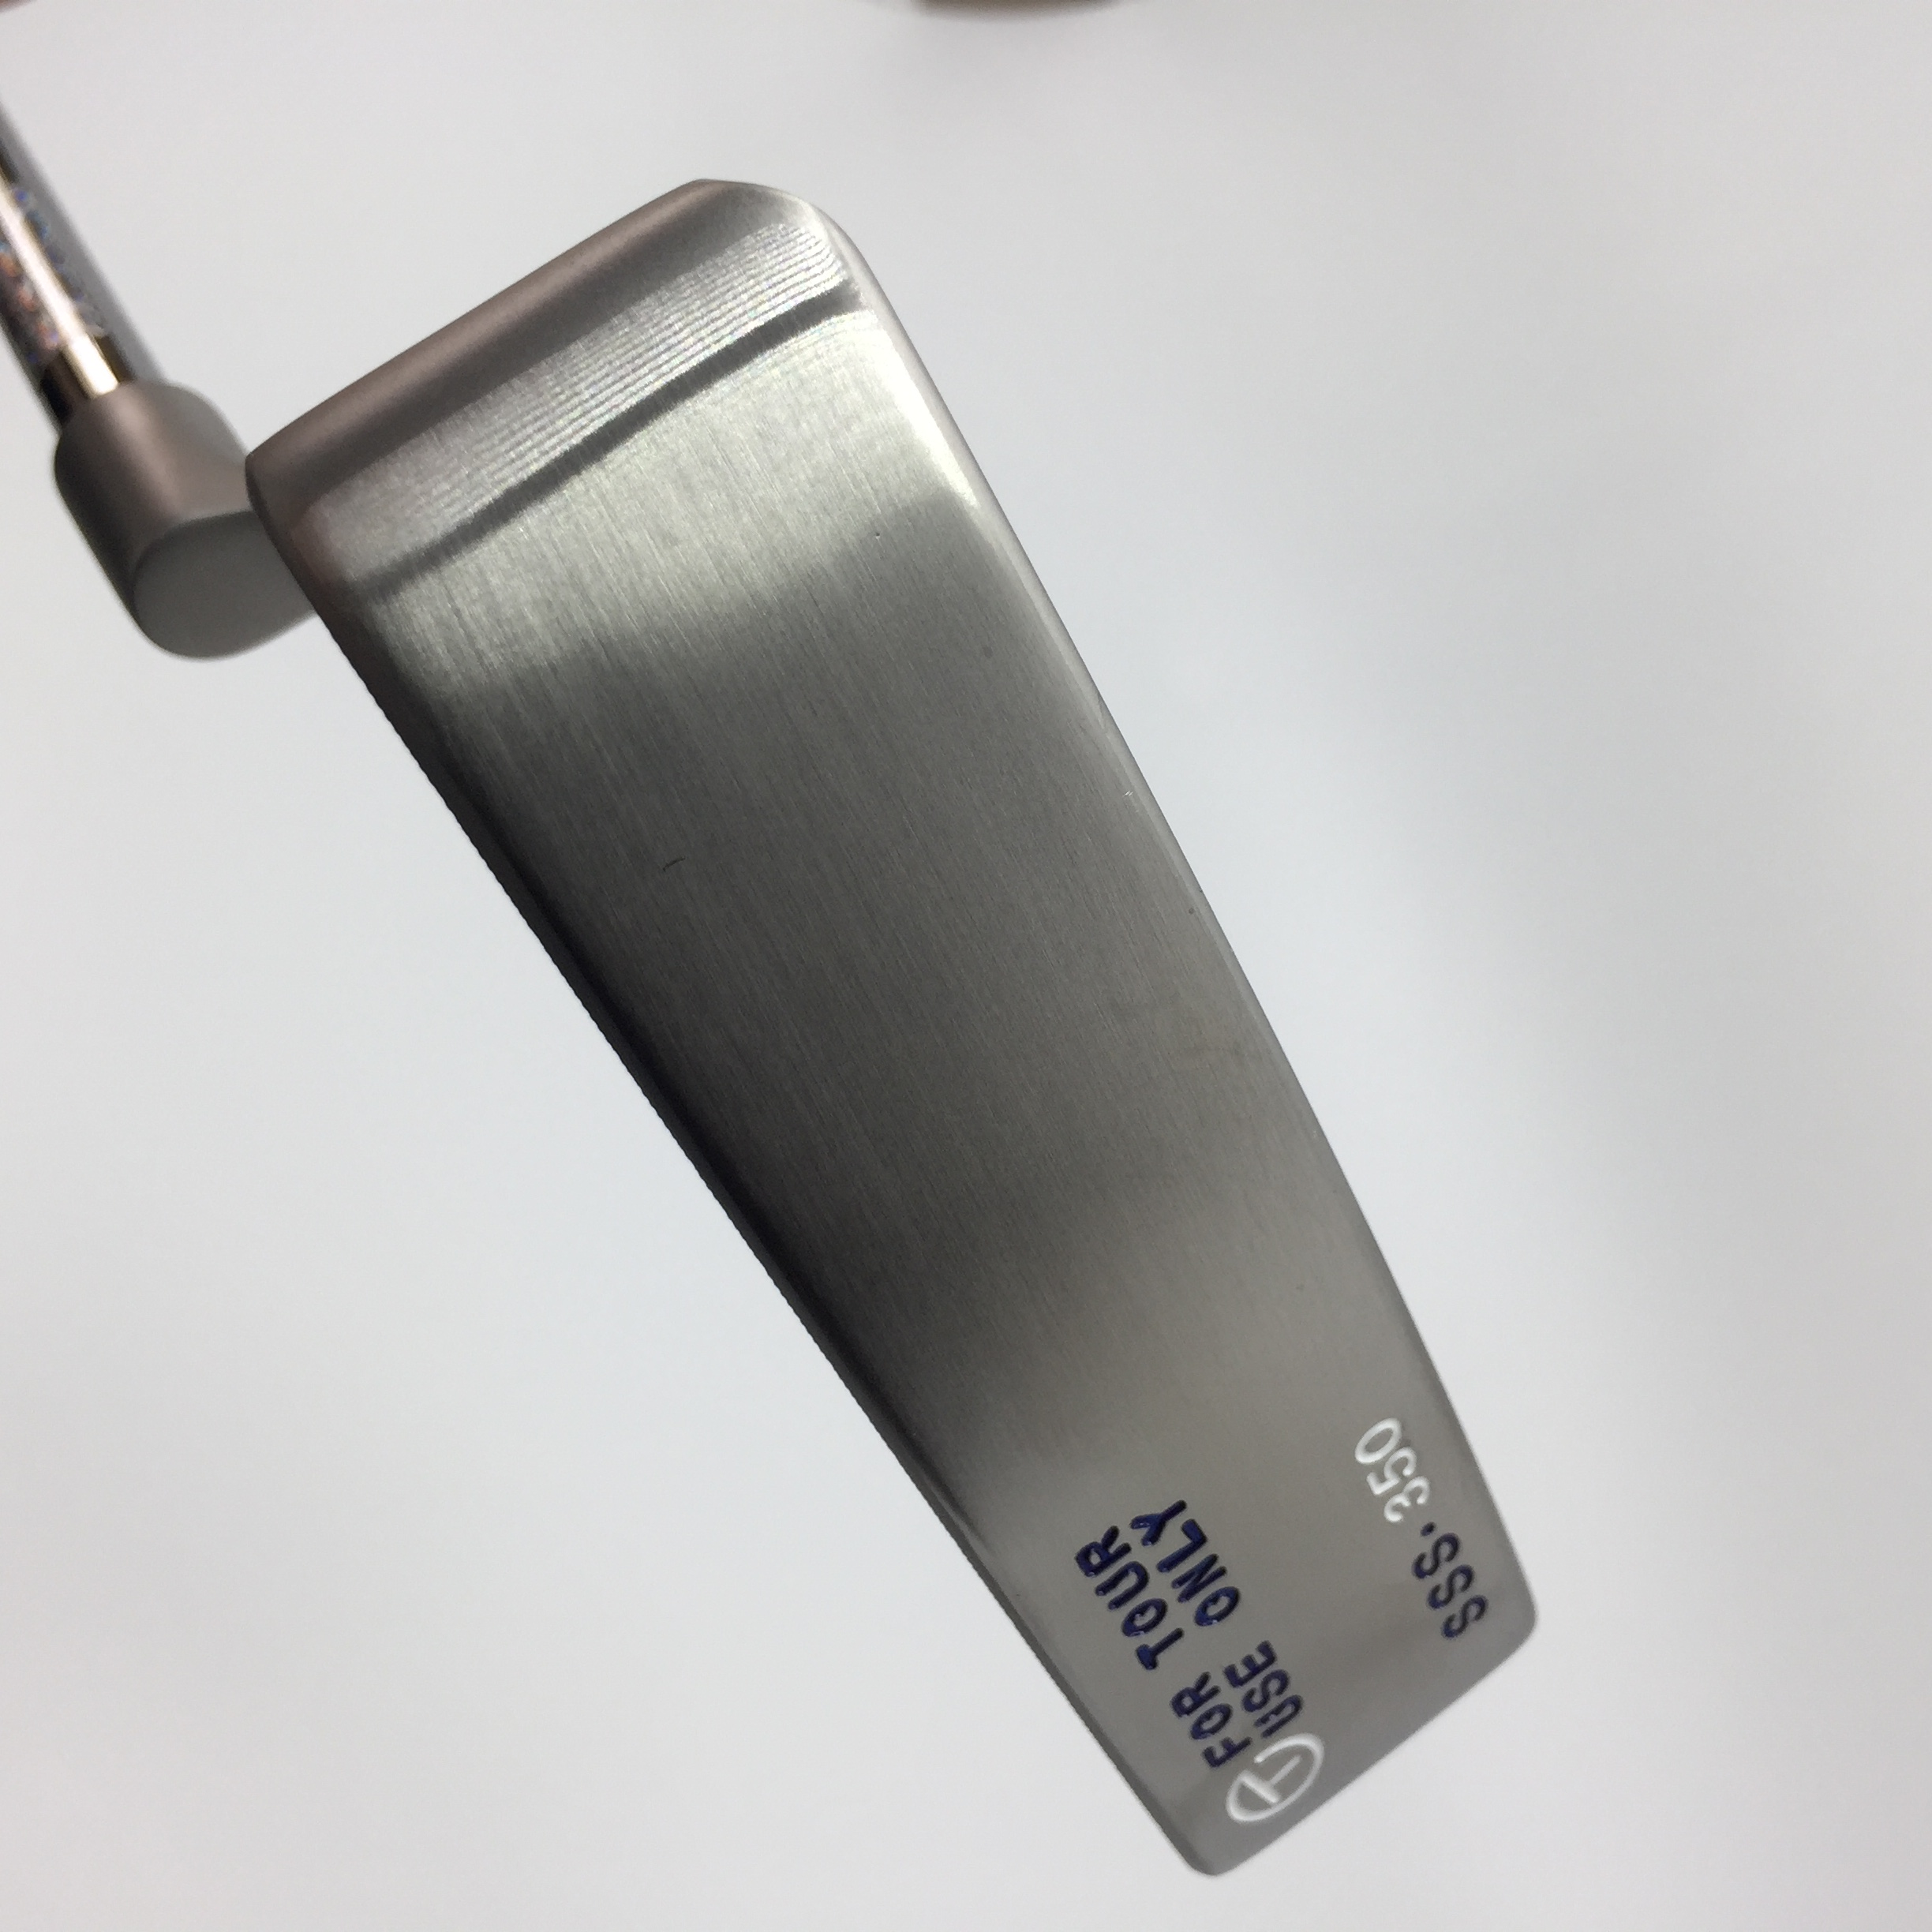 Scotty Cameron Timeless SSS 350g Putter For Tour Use Only